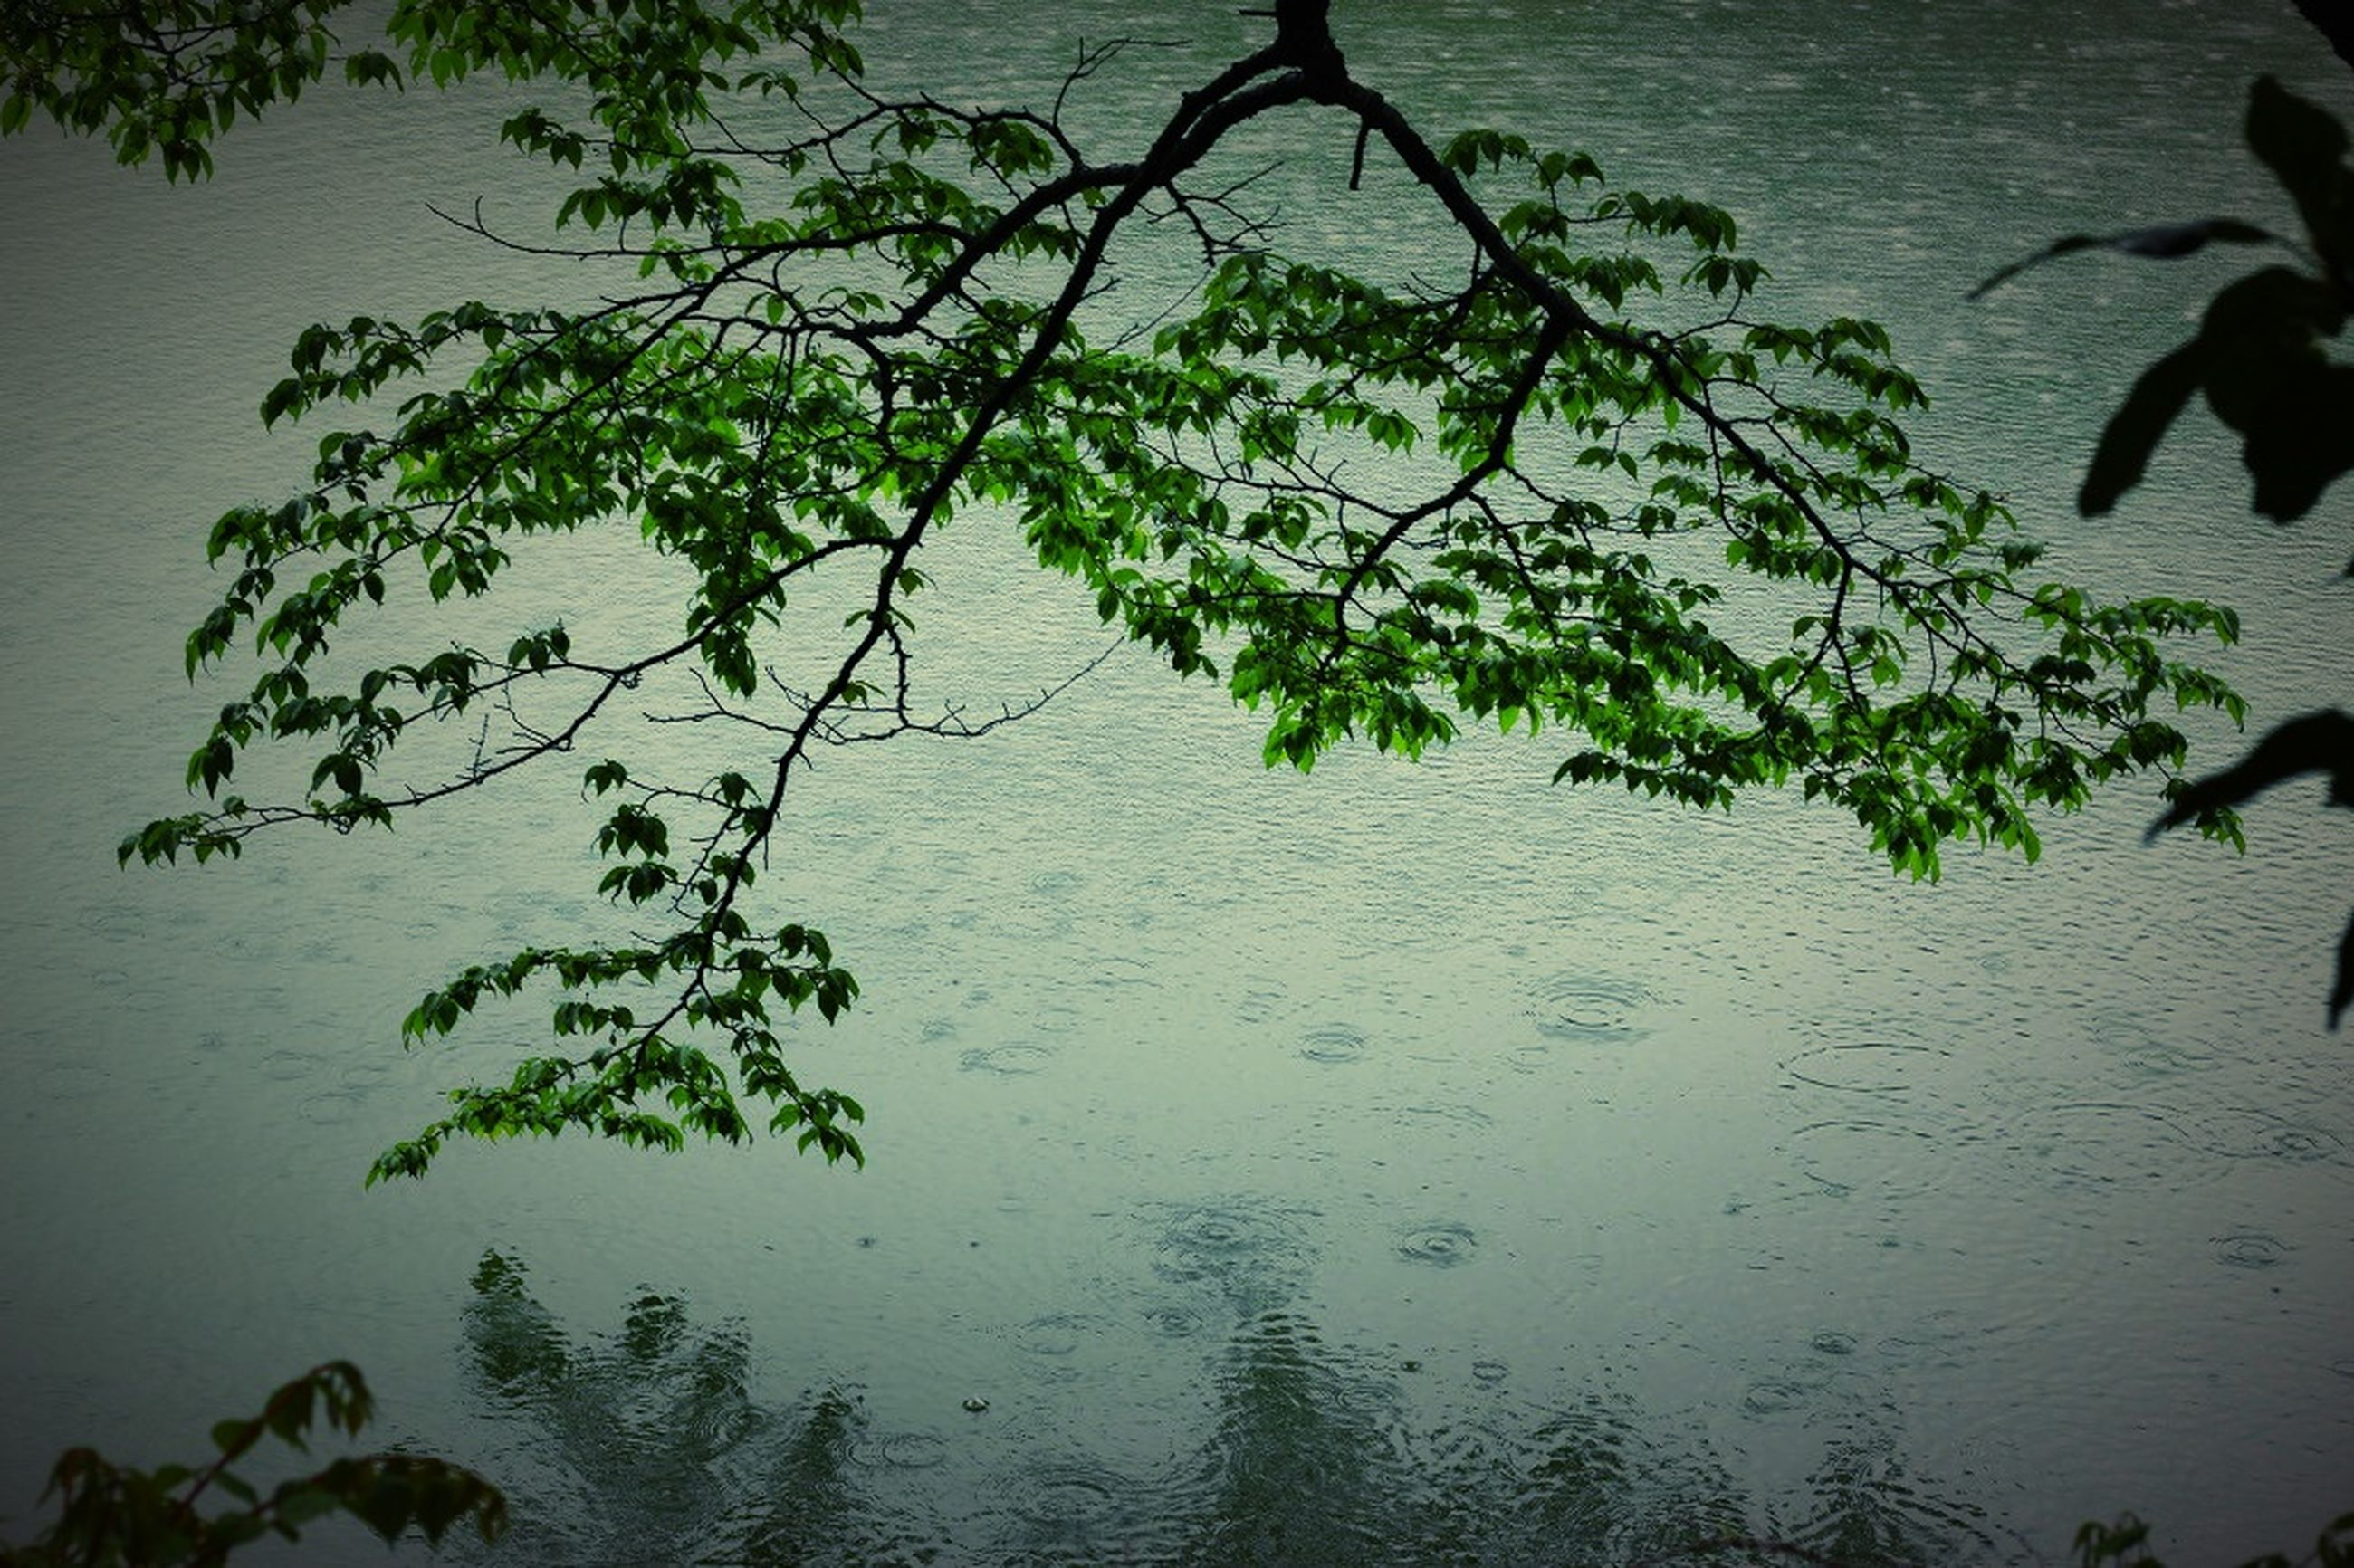 water, nature, lake, beauty in nature, waterfront, tree, outdoors, tranquility, plant, growth, no people, branch, scenics, day, sky